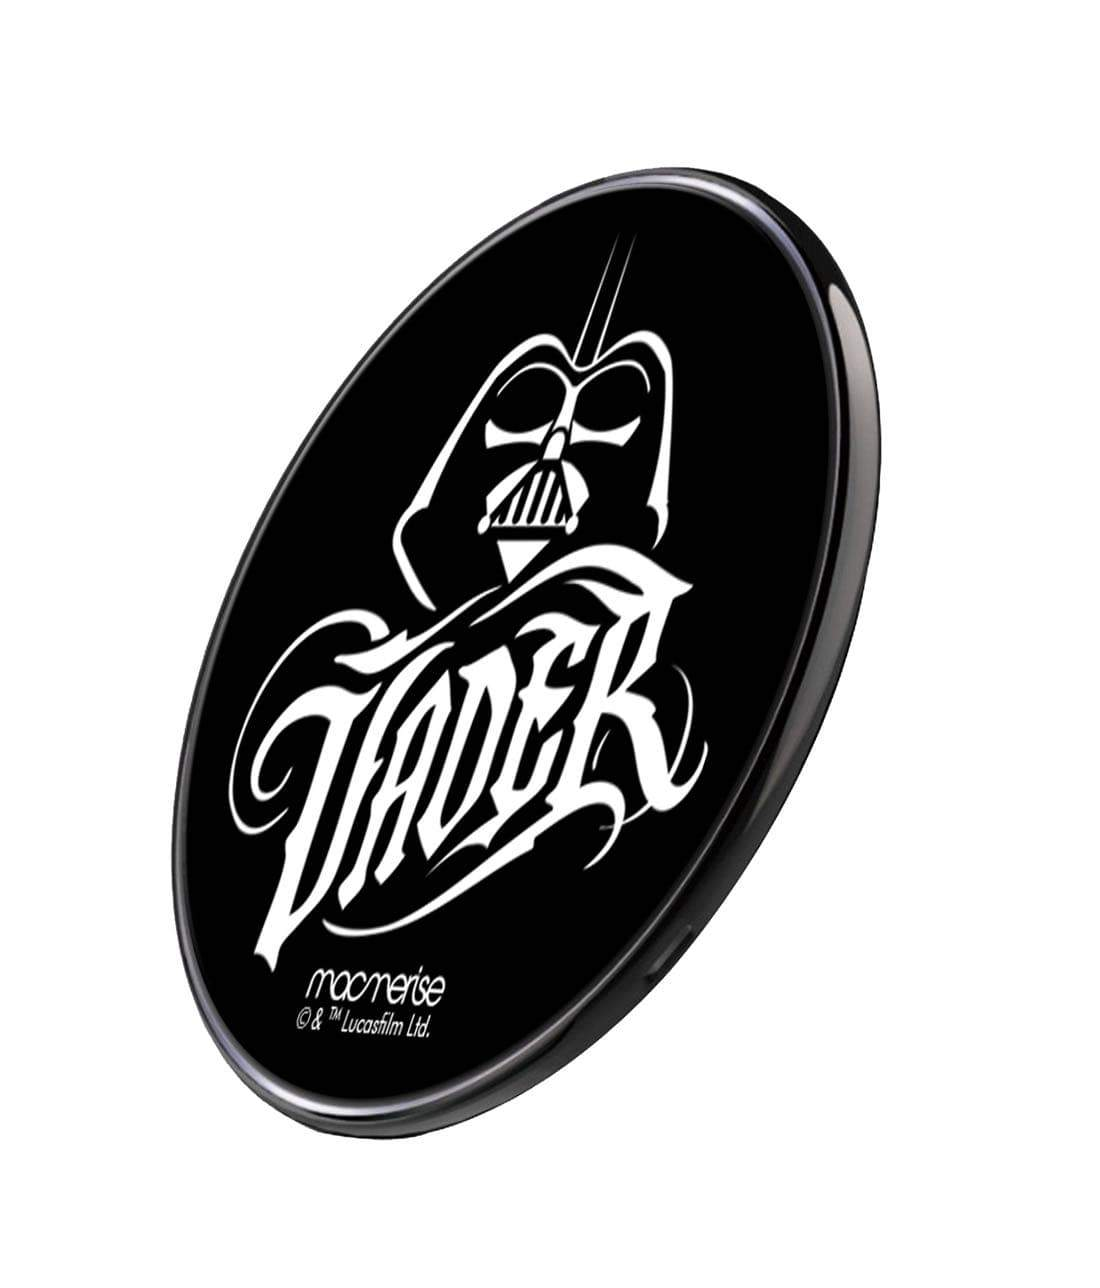 Vader Art Wireless Charger by Macmerise